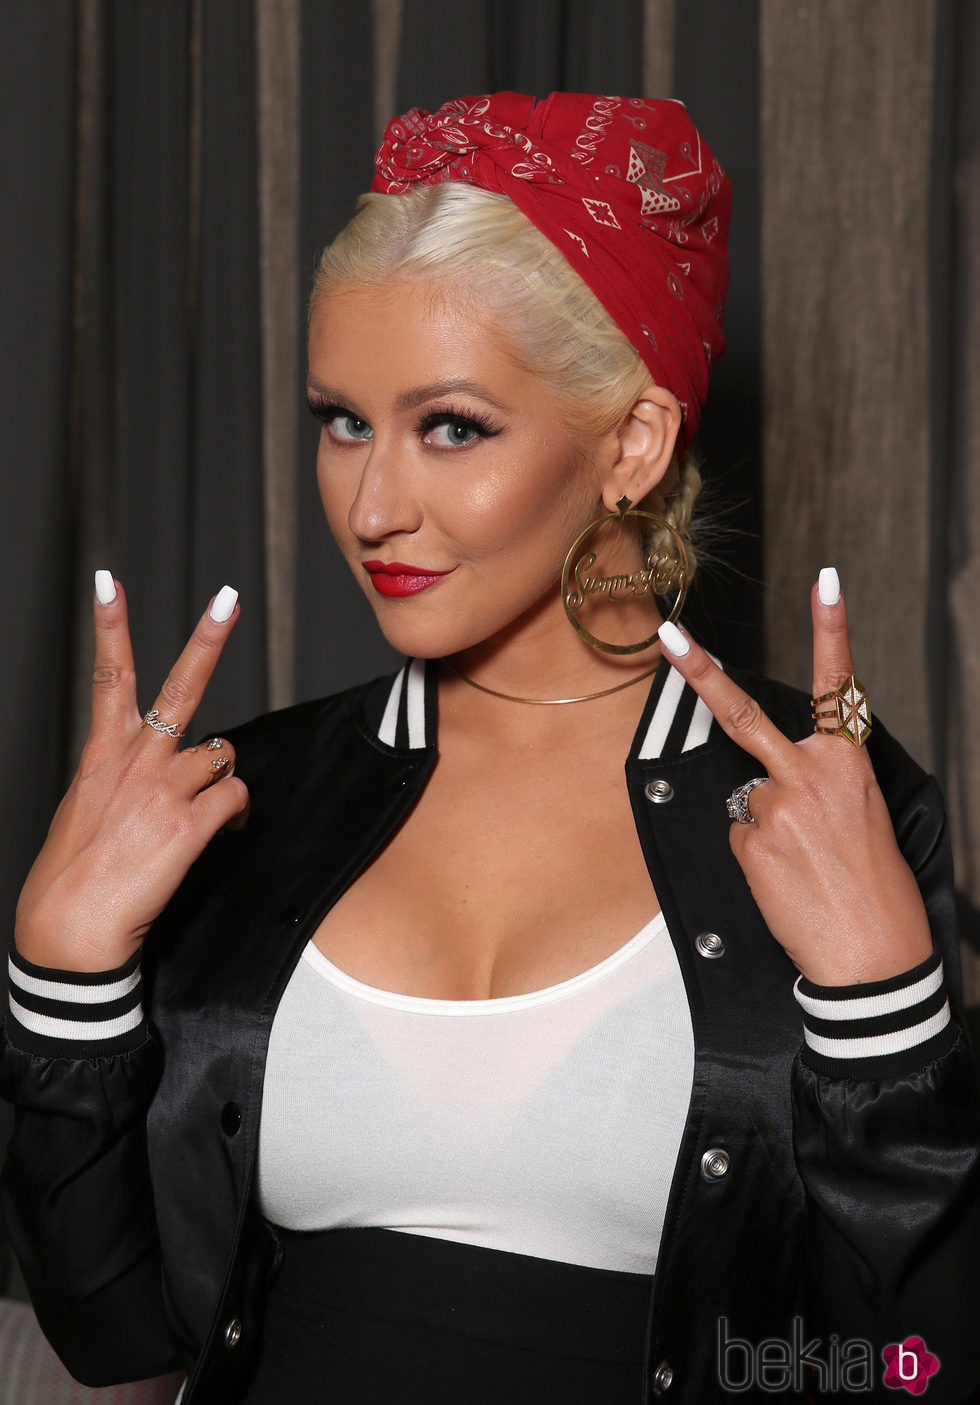 Christina aguilera en 'The Voice' Karaoke For Charity